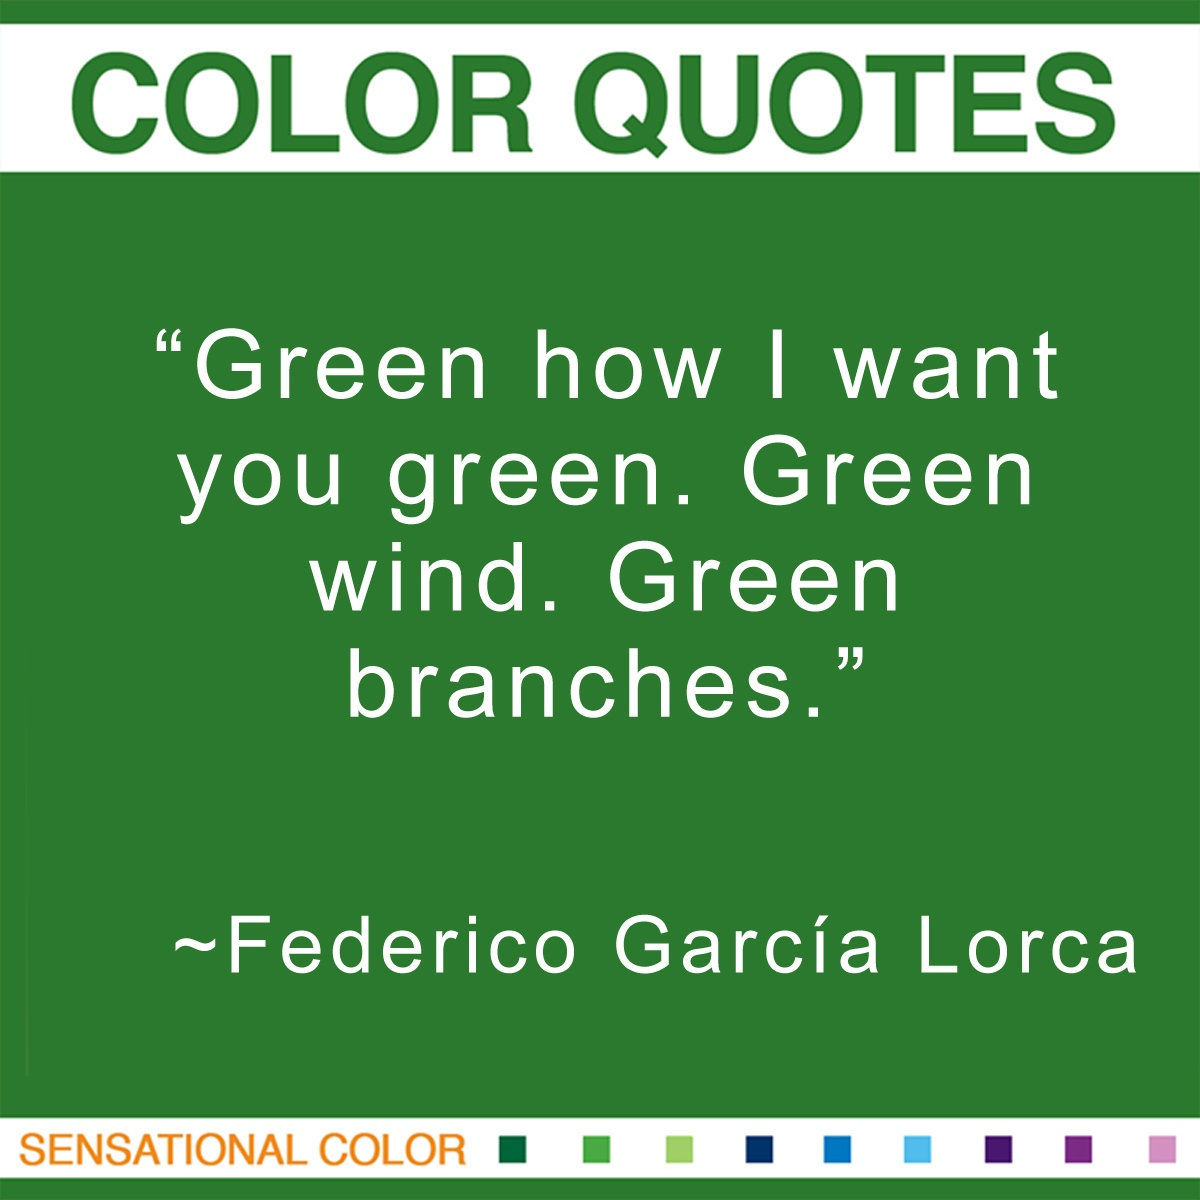 """""""Green how I want you green. Green wind. Green branches."""" - Federico lorca"""